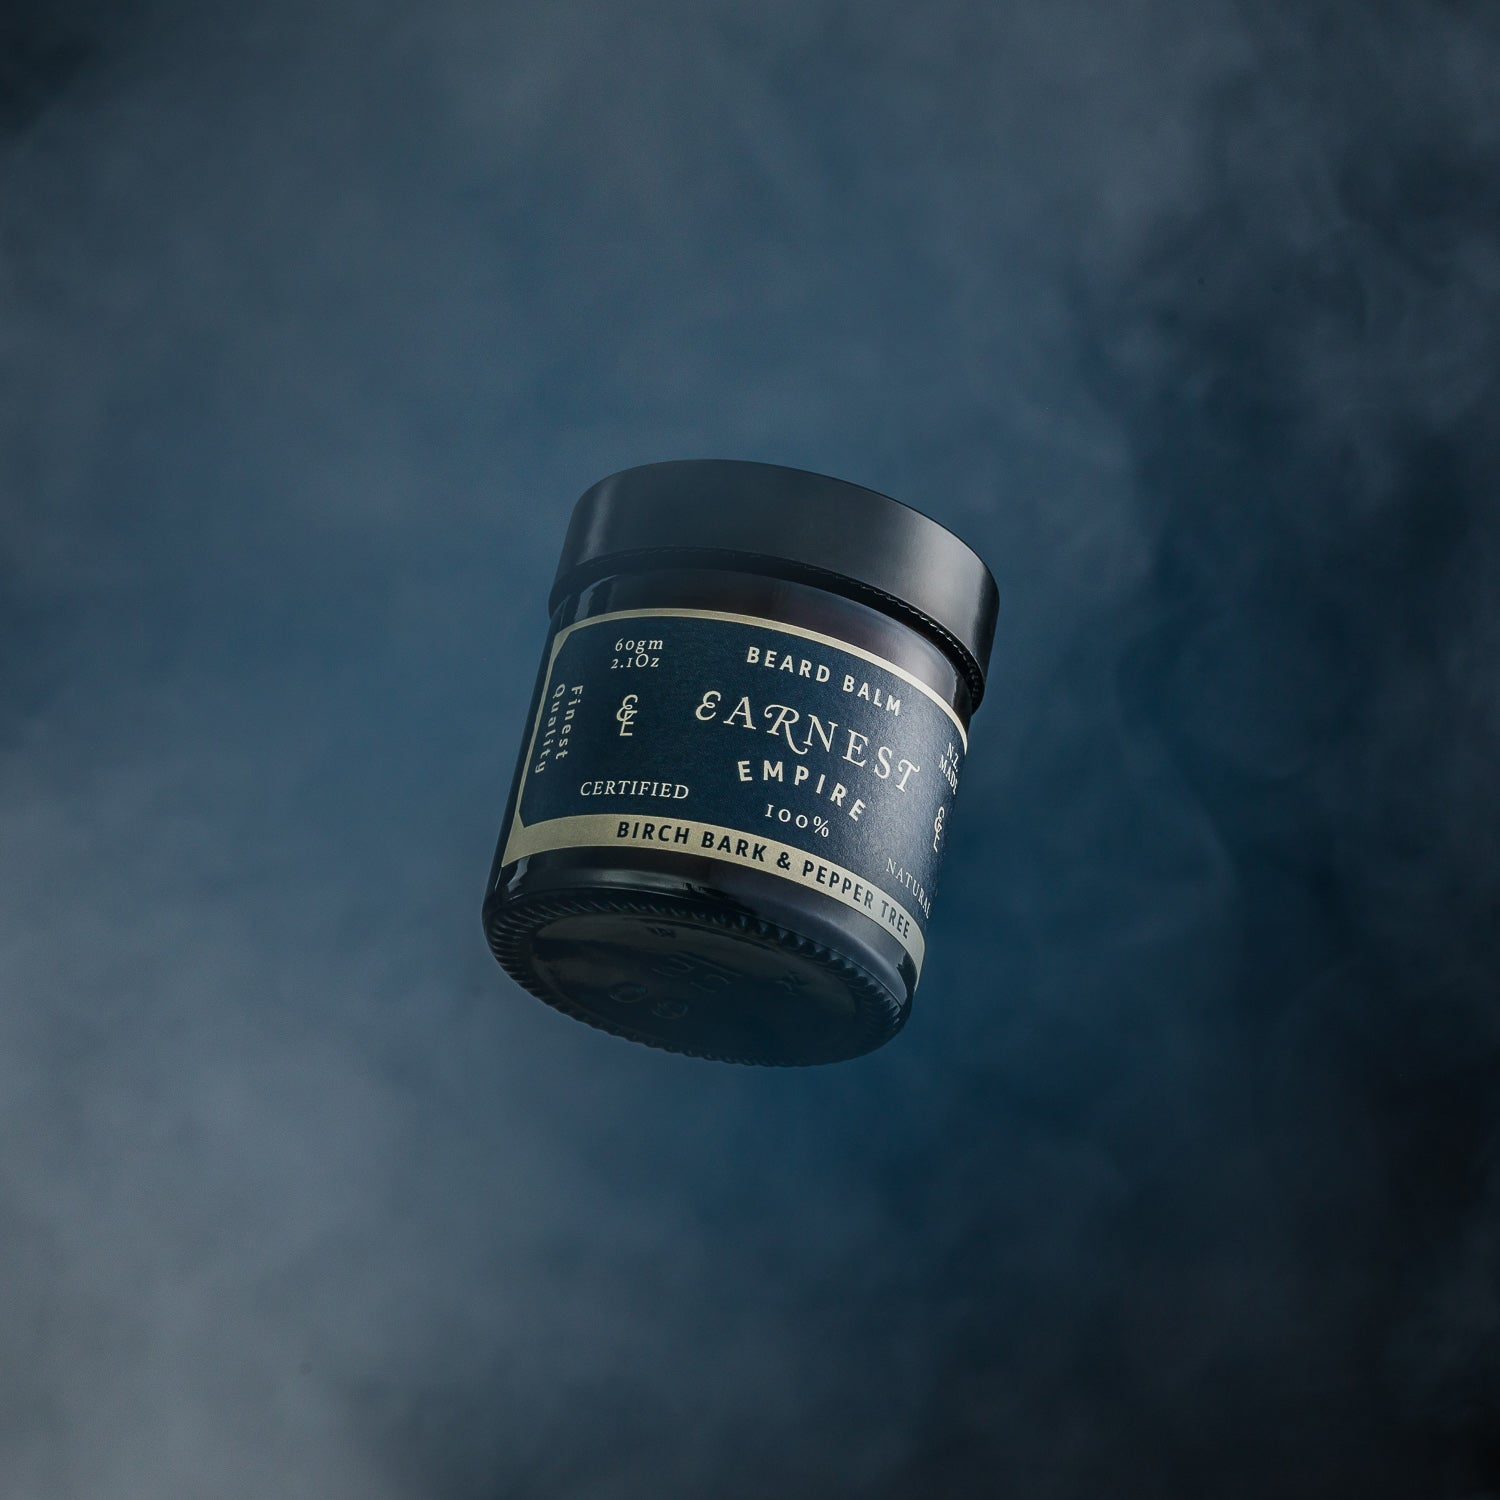 Earnest Empire Beard Balm